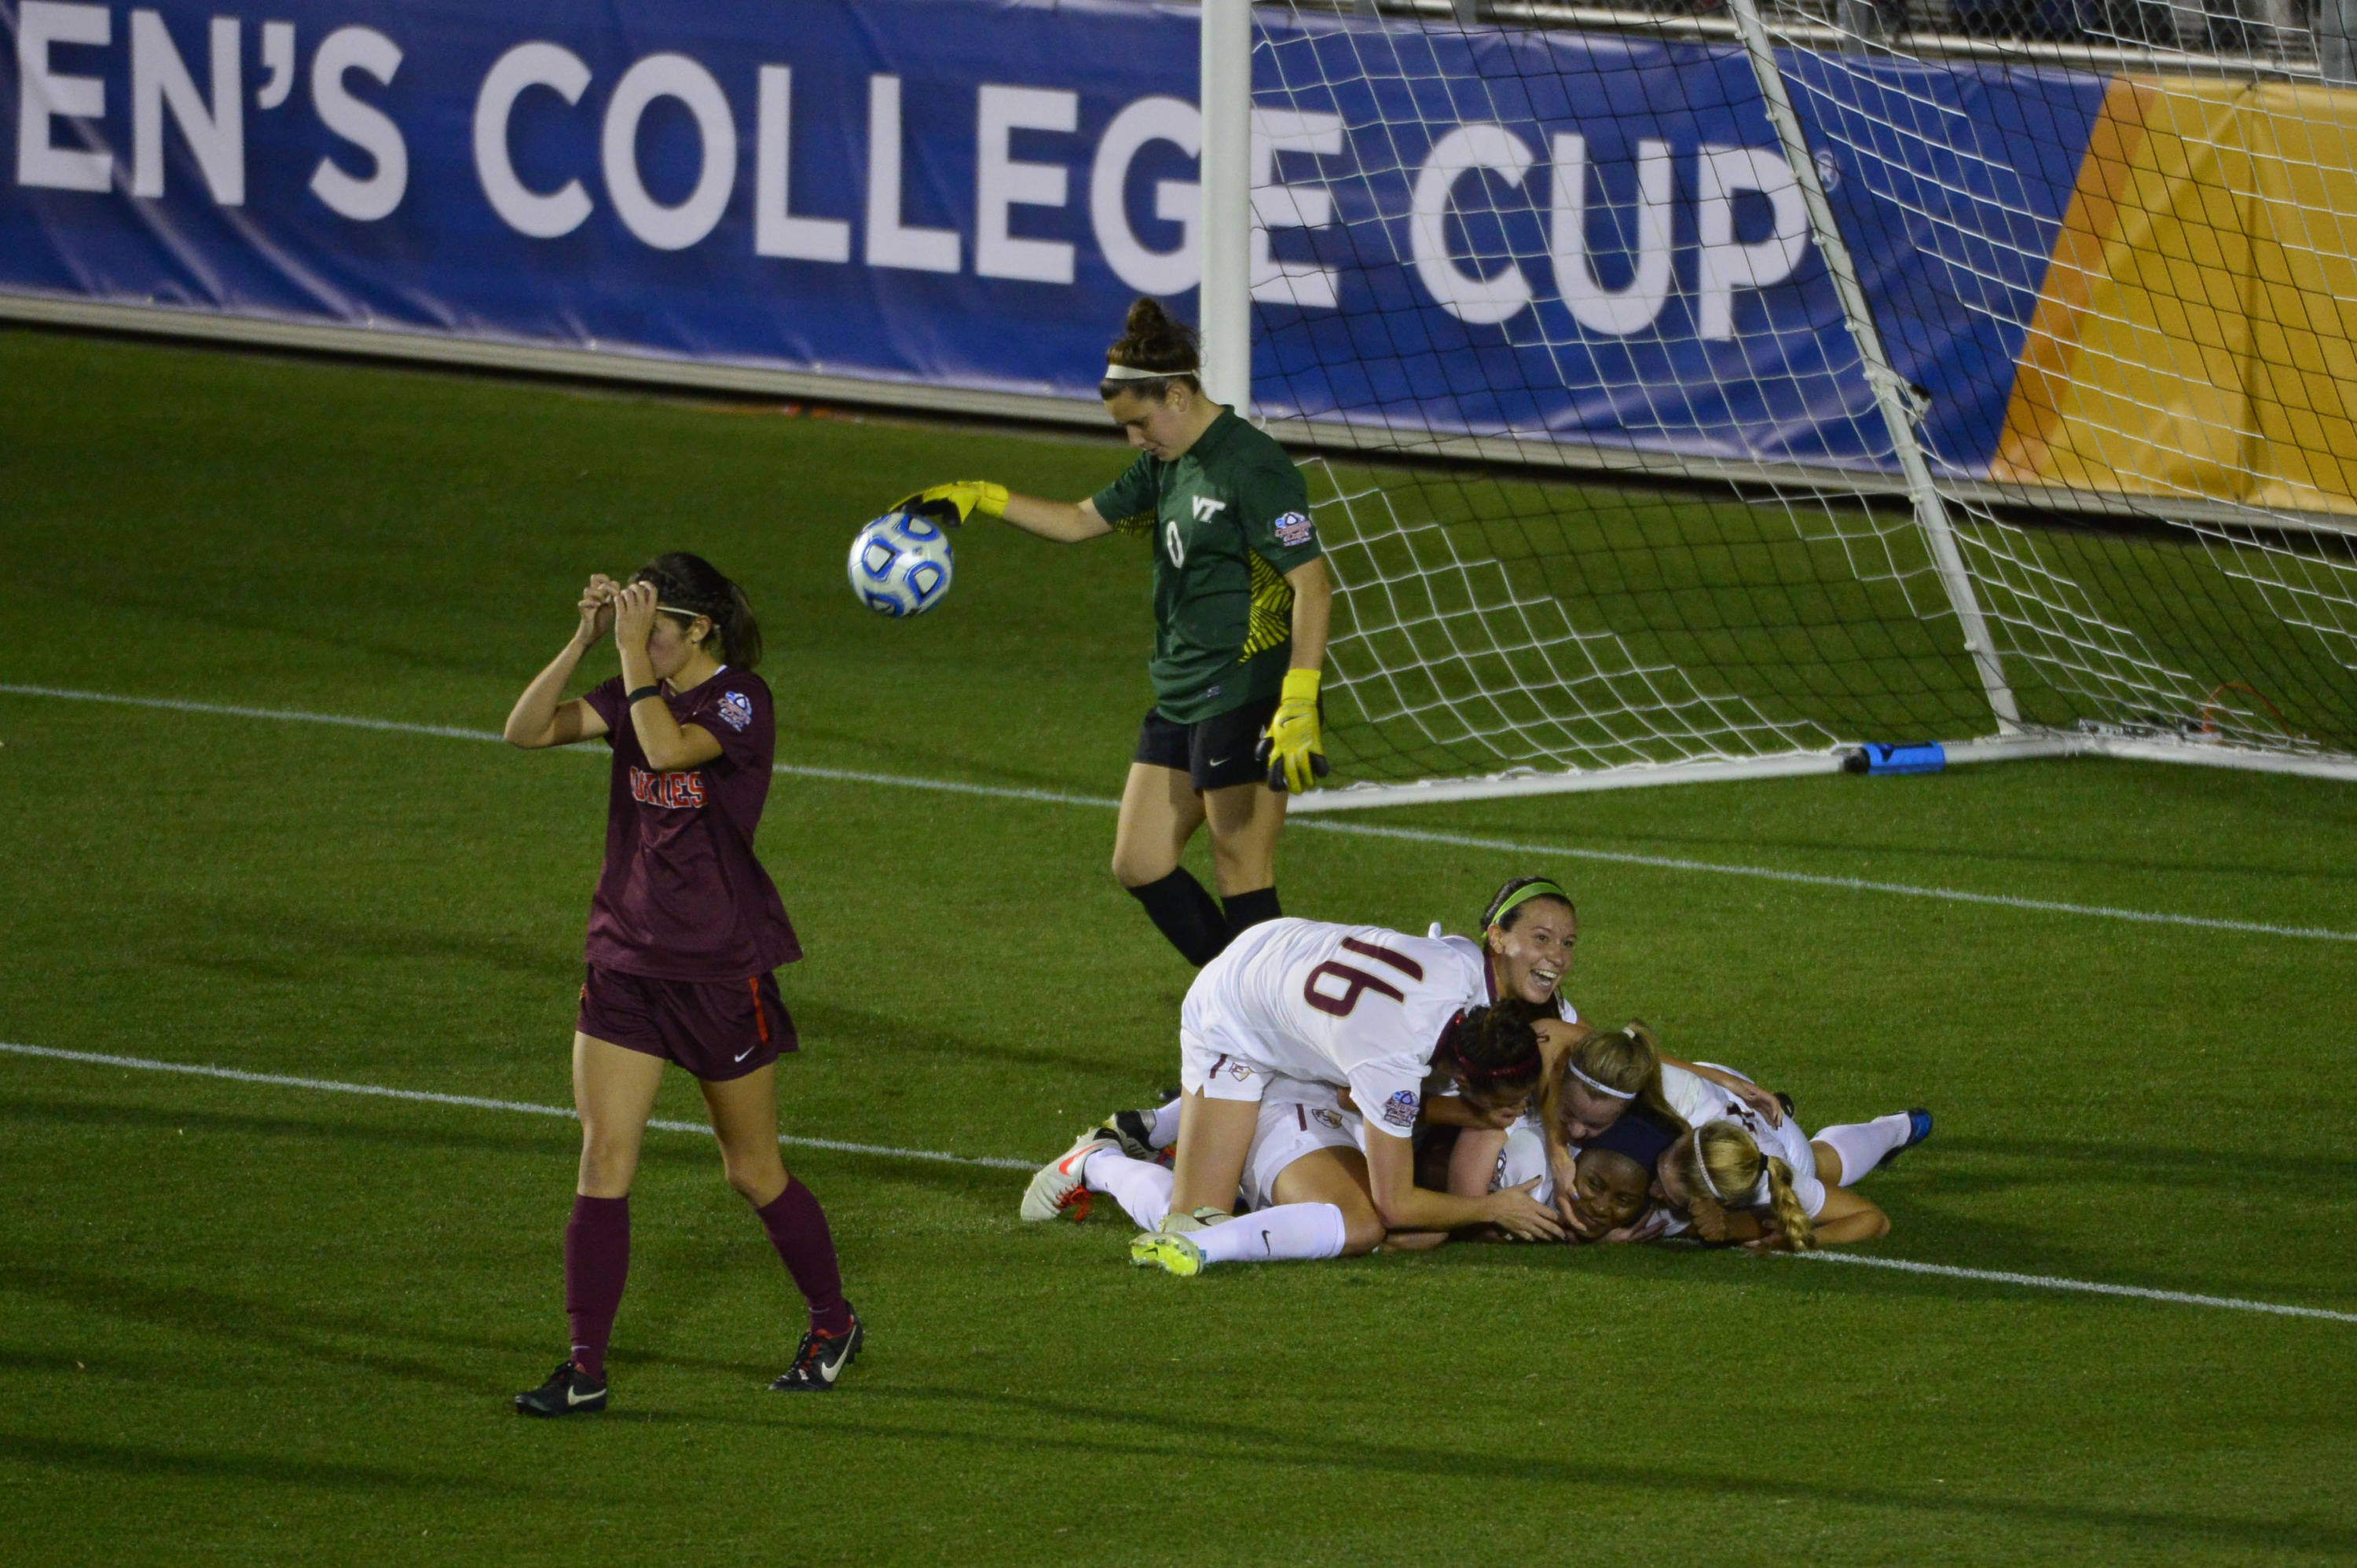 Dec 6, 2013; Cary, NC, USA; Florida State Seminoles players pile on midfielder Jamia Fields (4) after she scores a goal as Virginia Tech Hokies defender Danielle King (8) and goalkeeper Cayle Colpitts (0) look on in the second half at WakeMed Soccer Park. Mandatory Credit: Bob Donnan-USA TODAY Sports